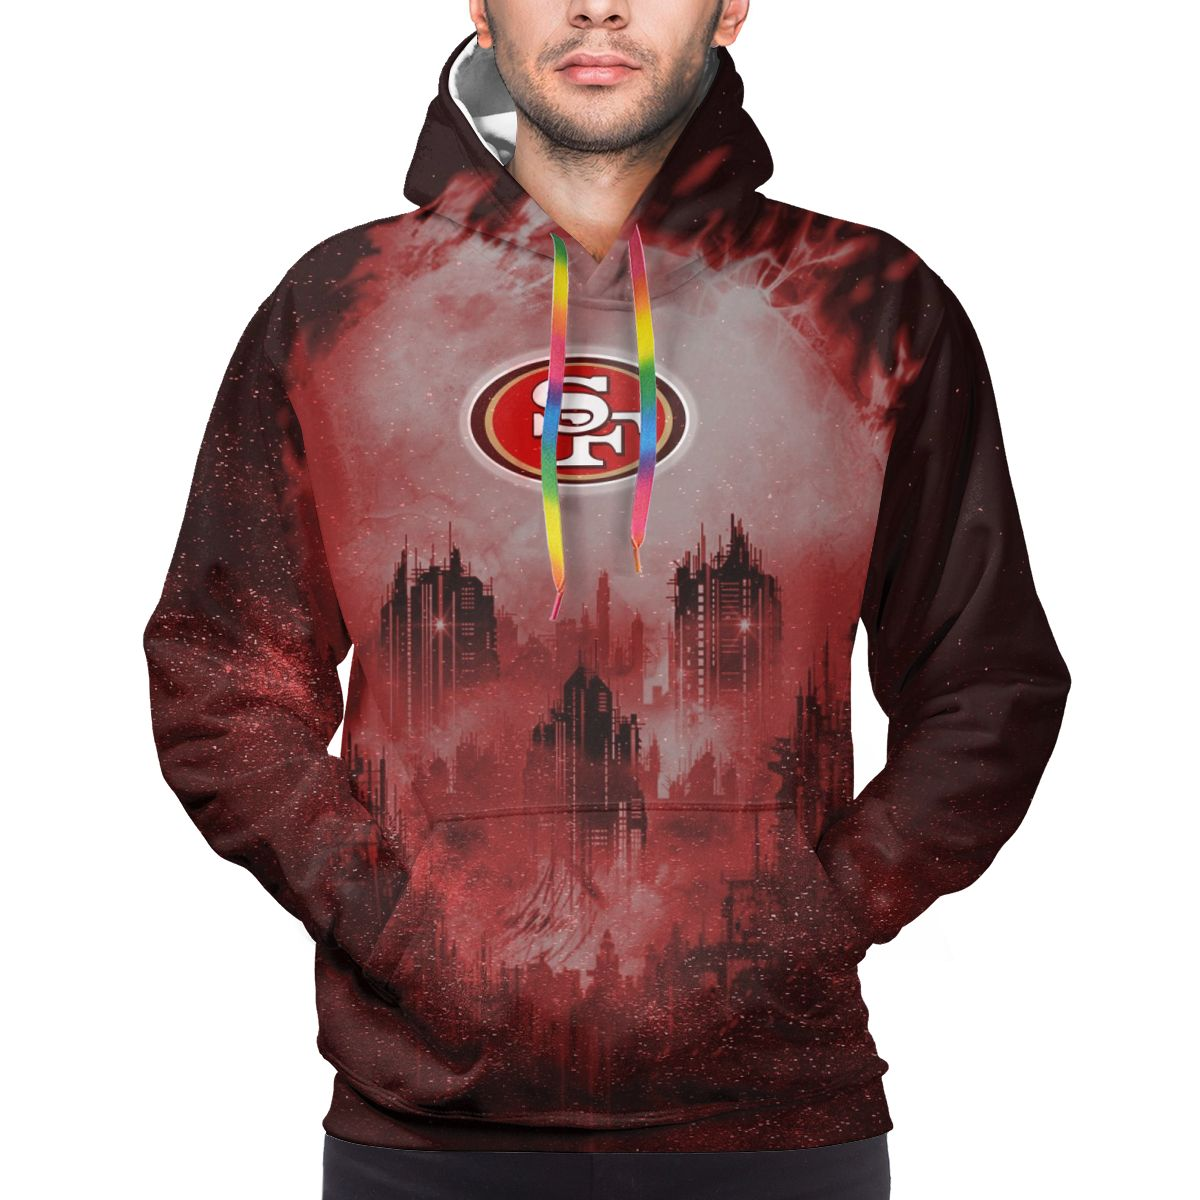 Armageddon 49ers Logo Print Hoodies For Men Pullover Sweatshirt